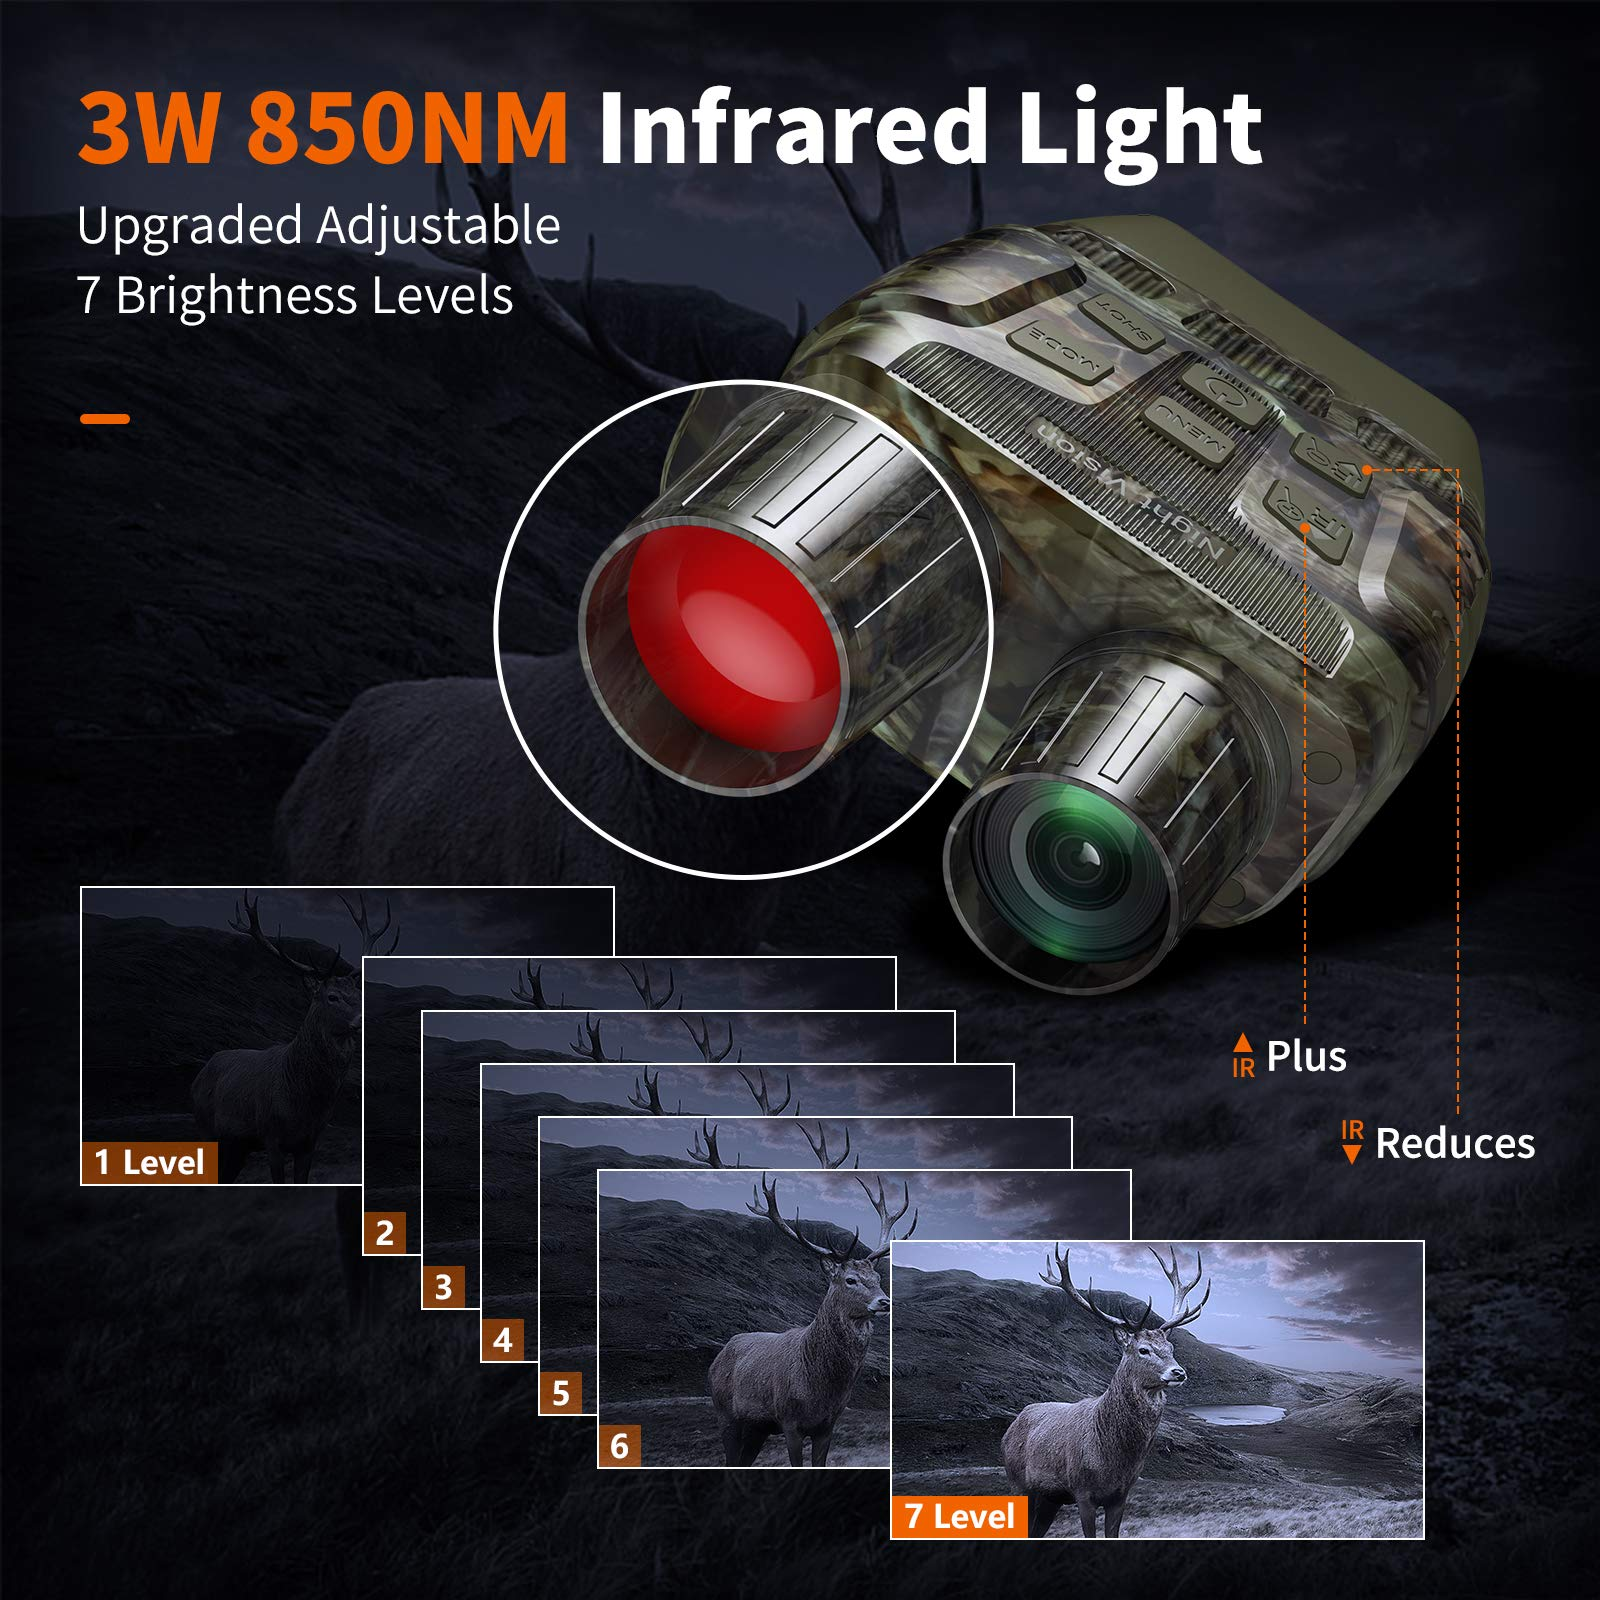 Night Vision Goggles - Digital Night Vision Binoculars - 984 ft Infrared Night Vision Range Lets You Capture Photos & Record Videos Save on 32 GB Card (Included)